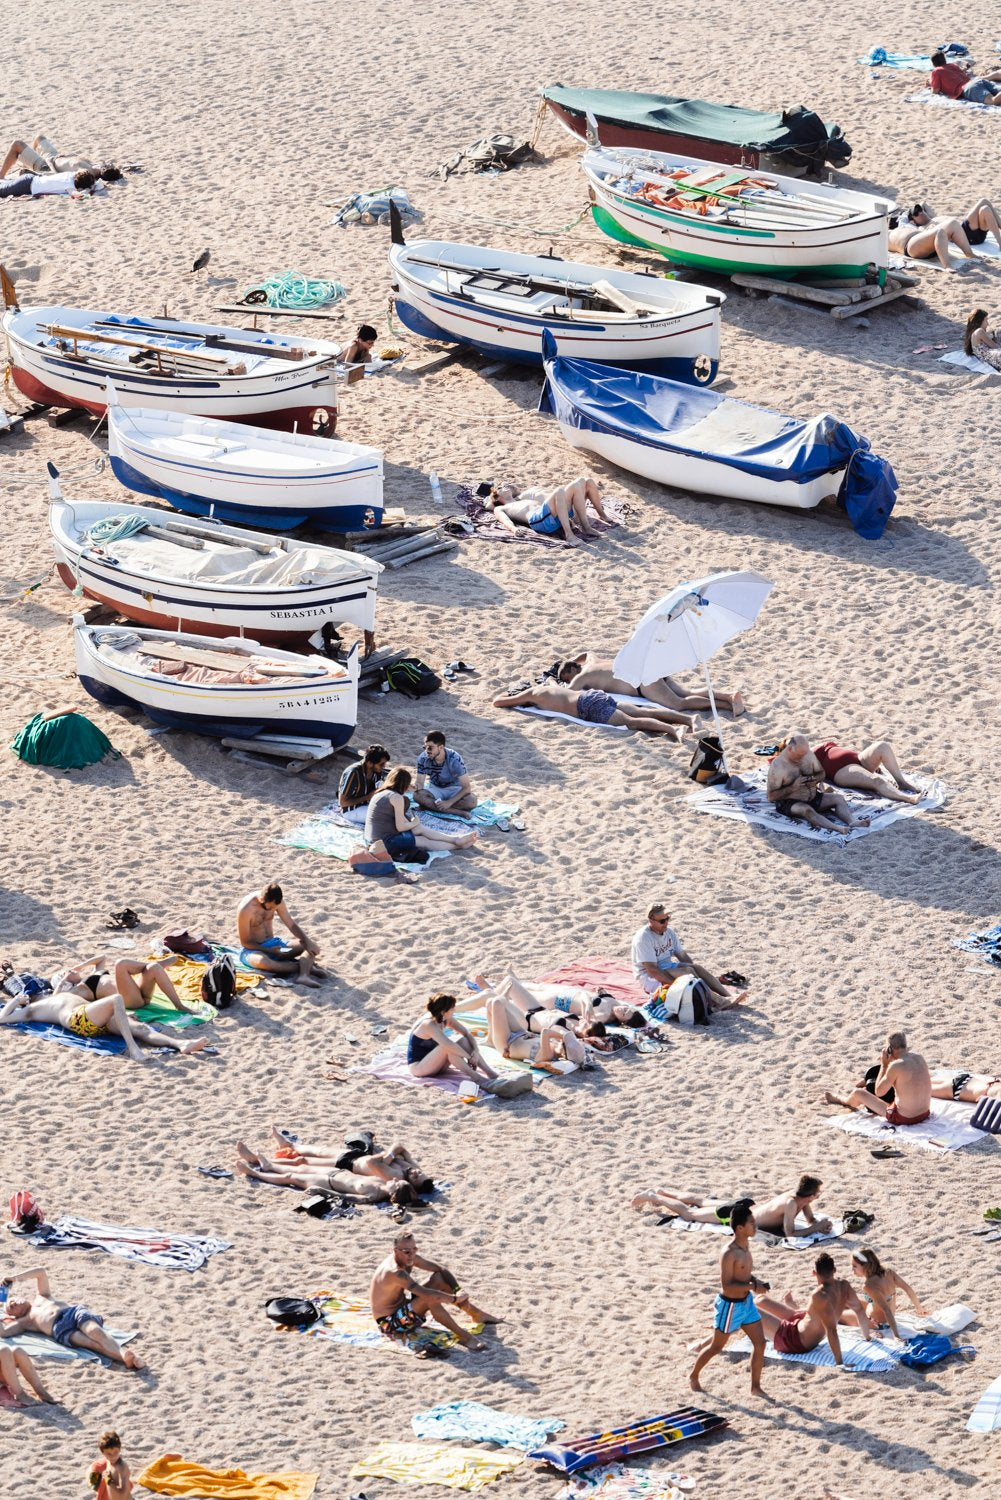 People lying on sand next to boats